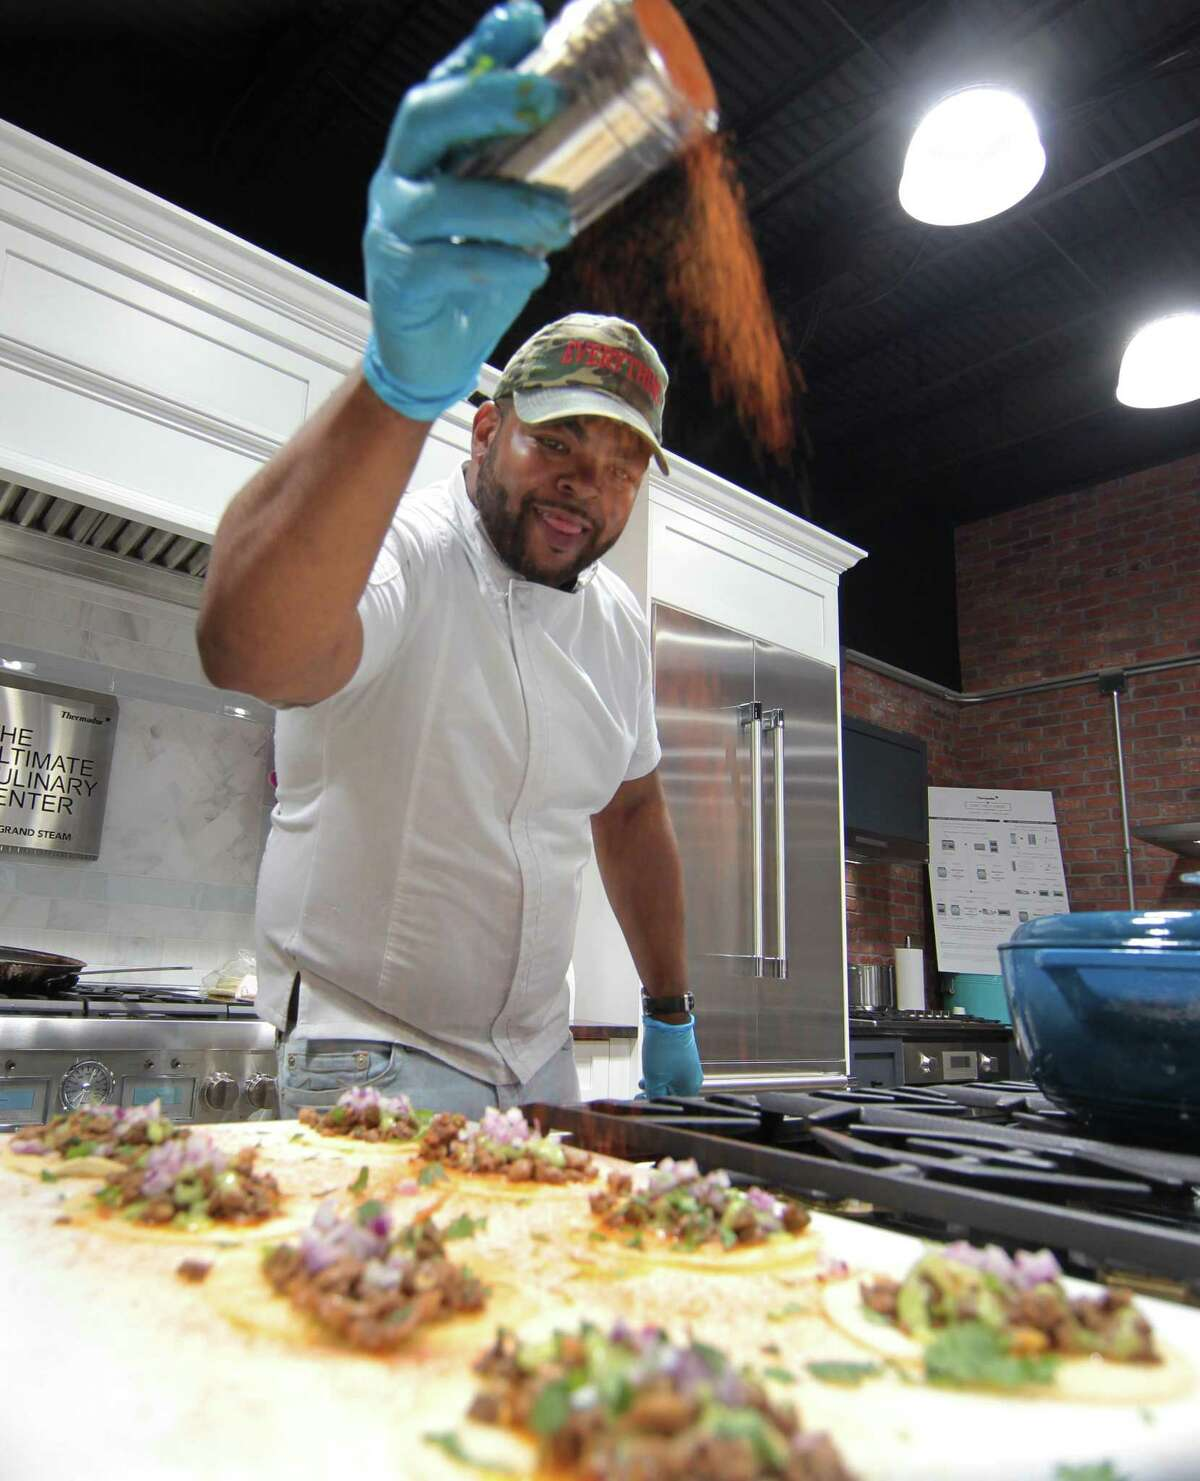 Taco Daddy's Chef Mo Major prepares food for guests during the kick-off event to the Hey Stamford! Food Festival held at County TV & Appliance in Stamford, Conn., on Tuesday August 3, 2021. The 2021 Hey Stamford! Food Festival will take place over two weekends from Thursday, August 12 - Sunday, August 15 and Thursday, August 19 - Sunday, August 22 at Mill River Park in downtown Stamford, CT.